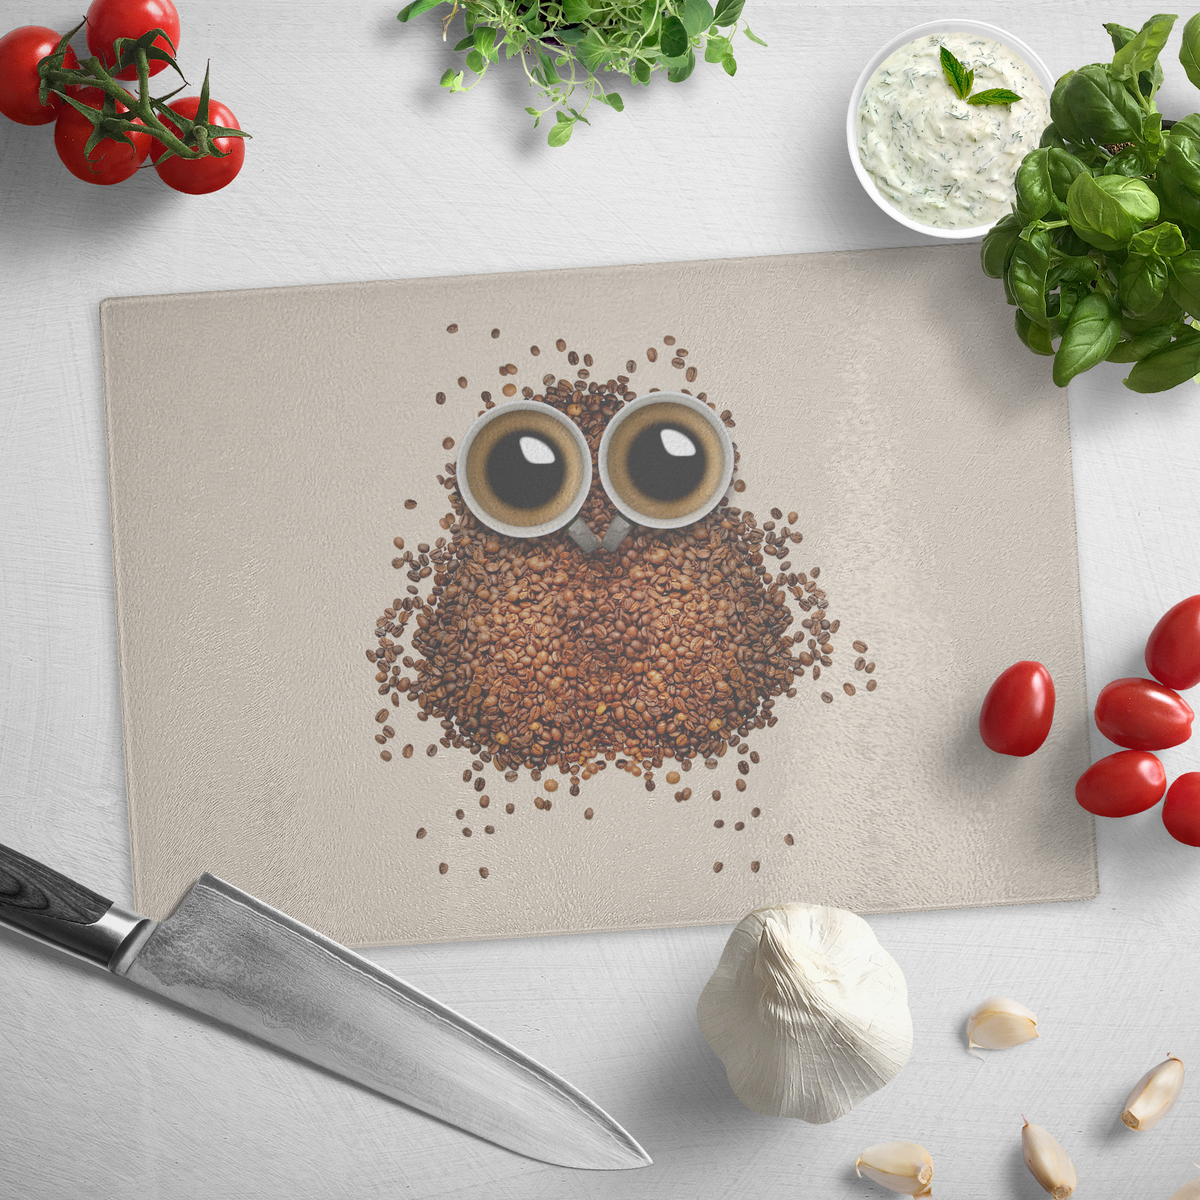 Coffee eyed - Glass cutting board